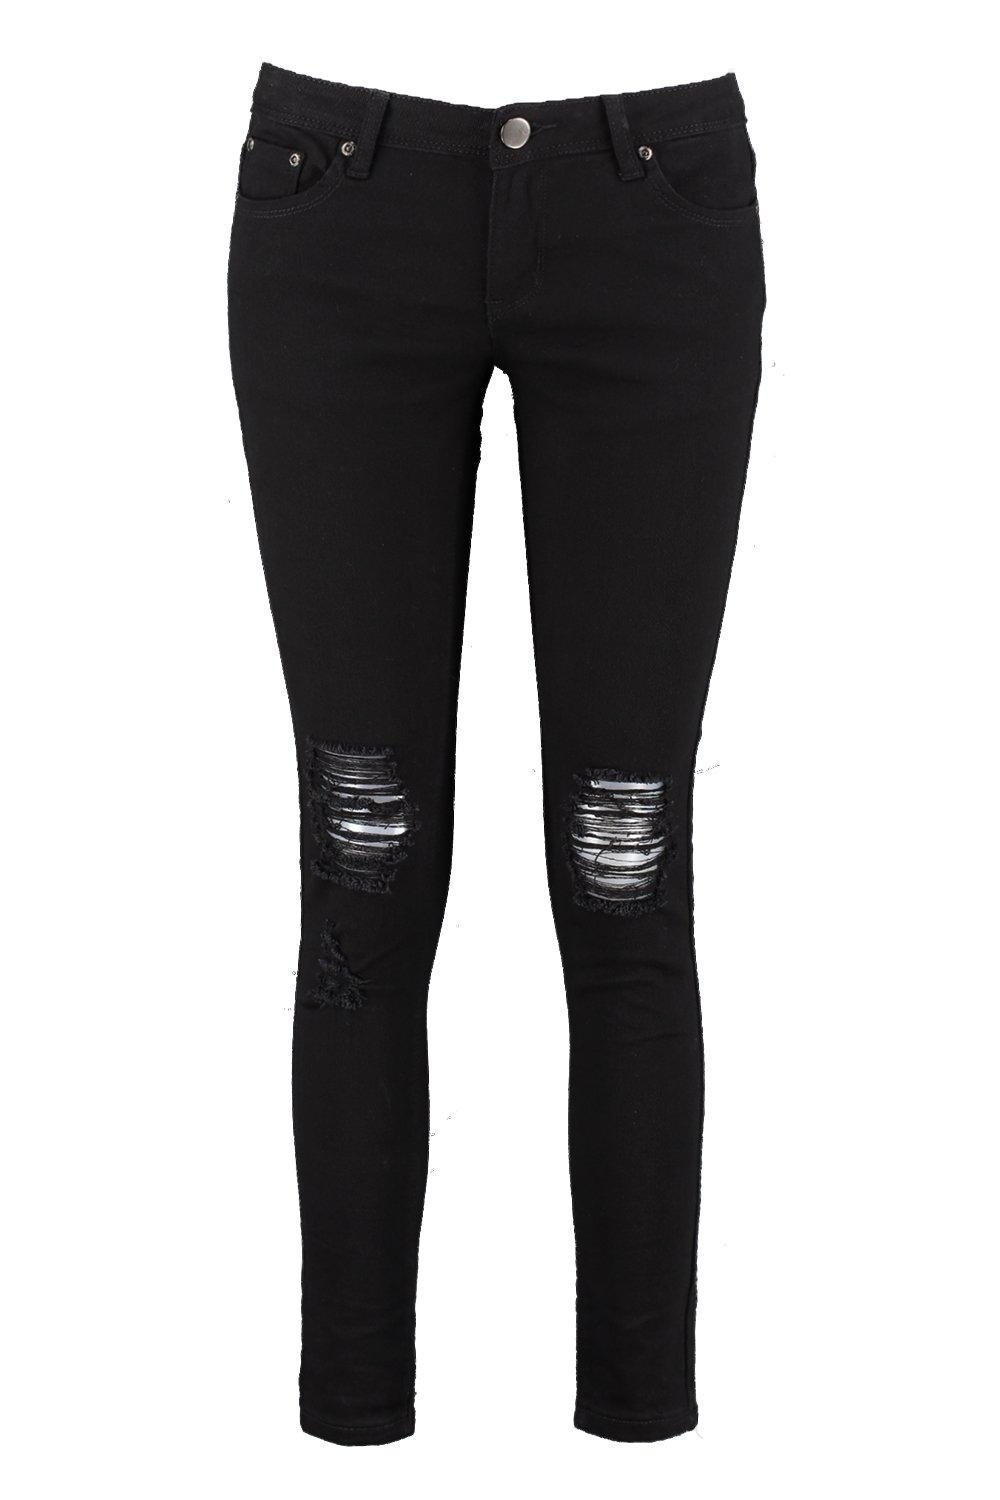 Torn Black Skinny Jeans - Jeans Am